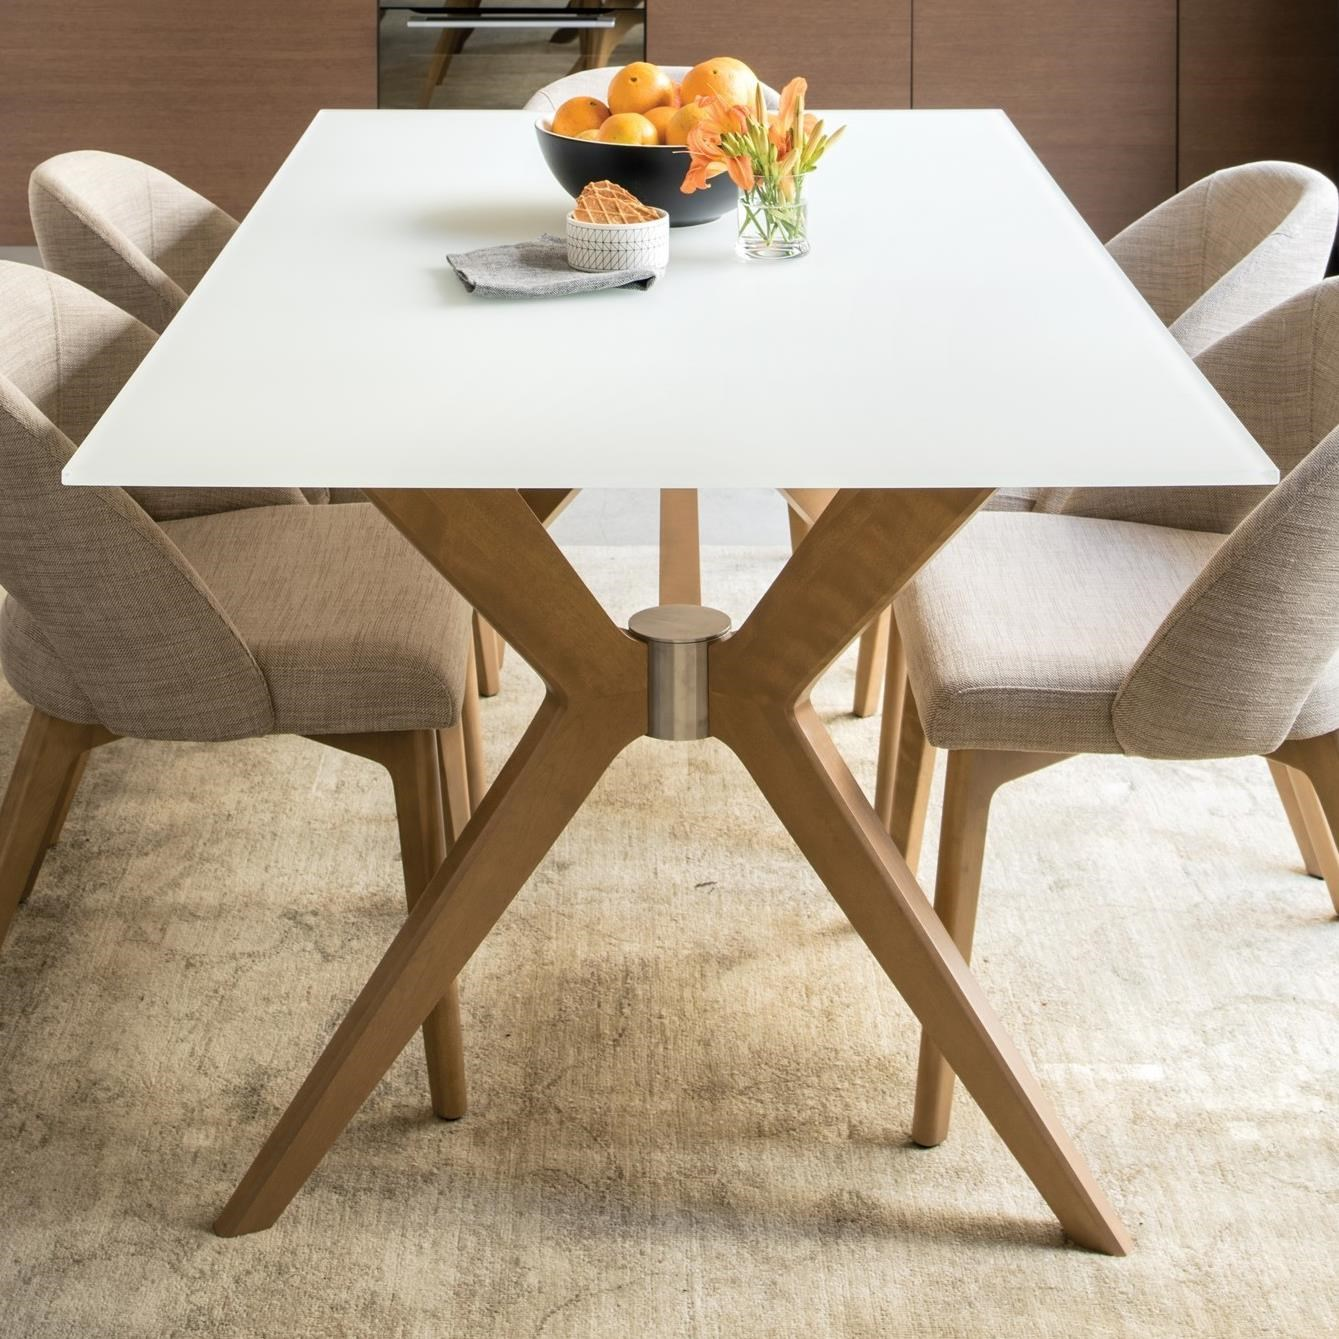 Downtown - Custom Dining Customizable Glass Top Dining Table by Canadel at Steger's Furniture